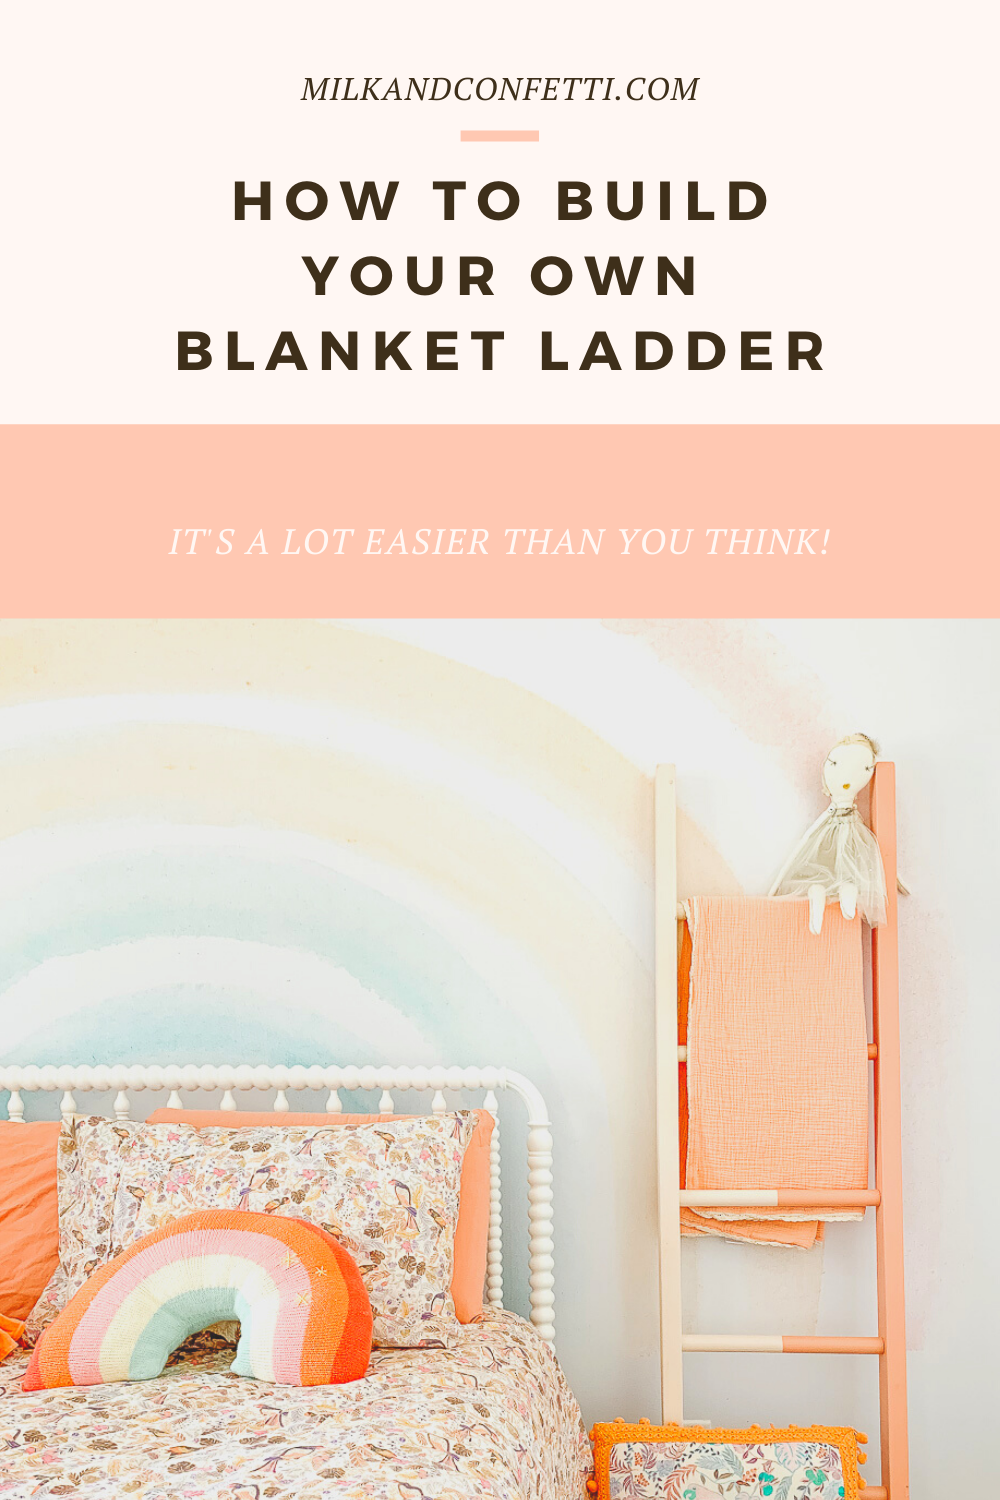 MAKE YOUR OWN BLANKET LADDER